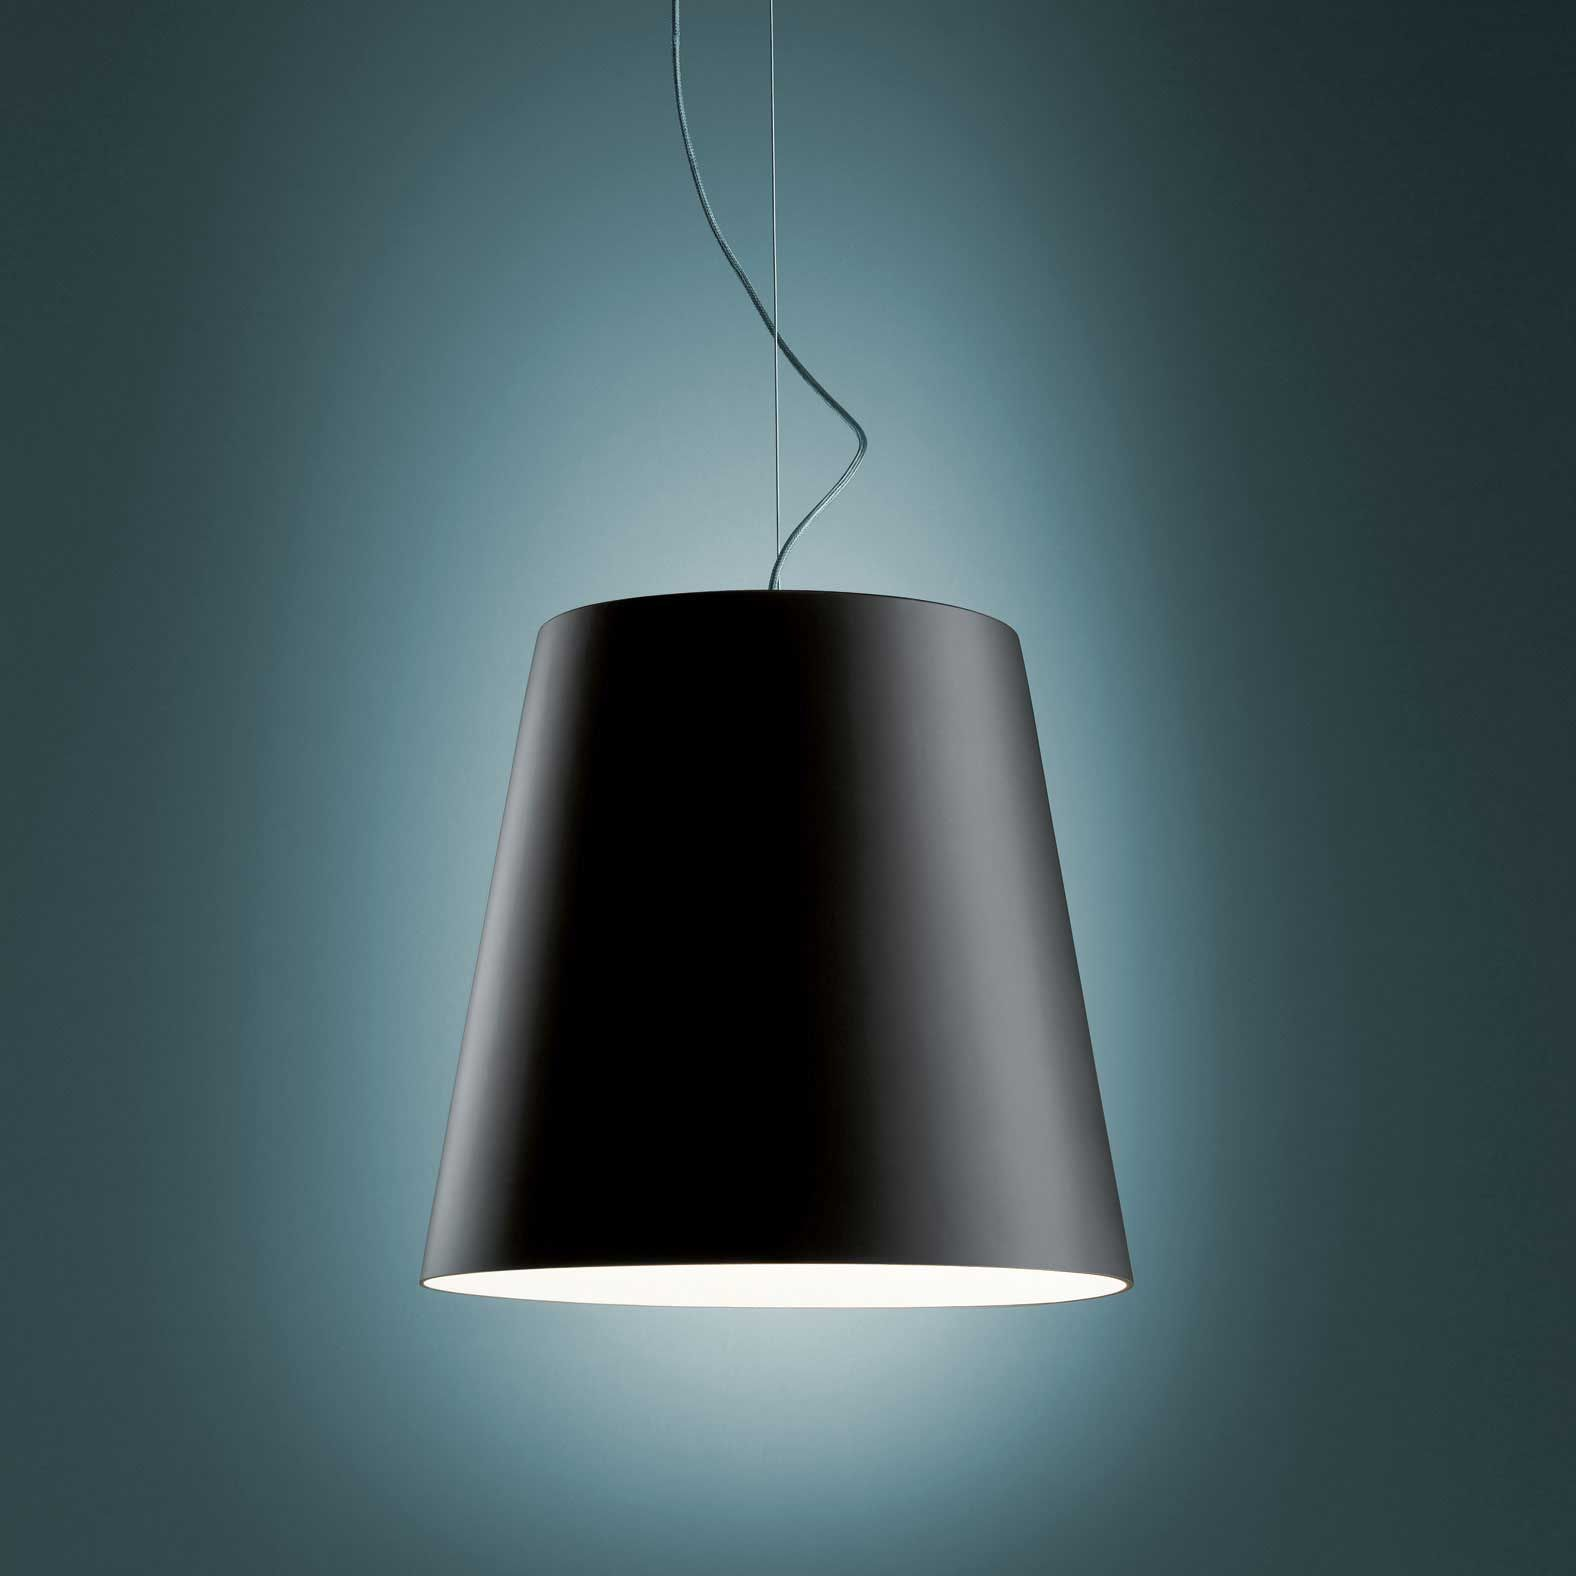 Amax Suspension By Fontanaarte Lighting Fontanaarte Floor Lamp